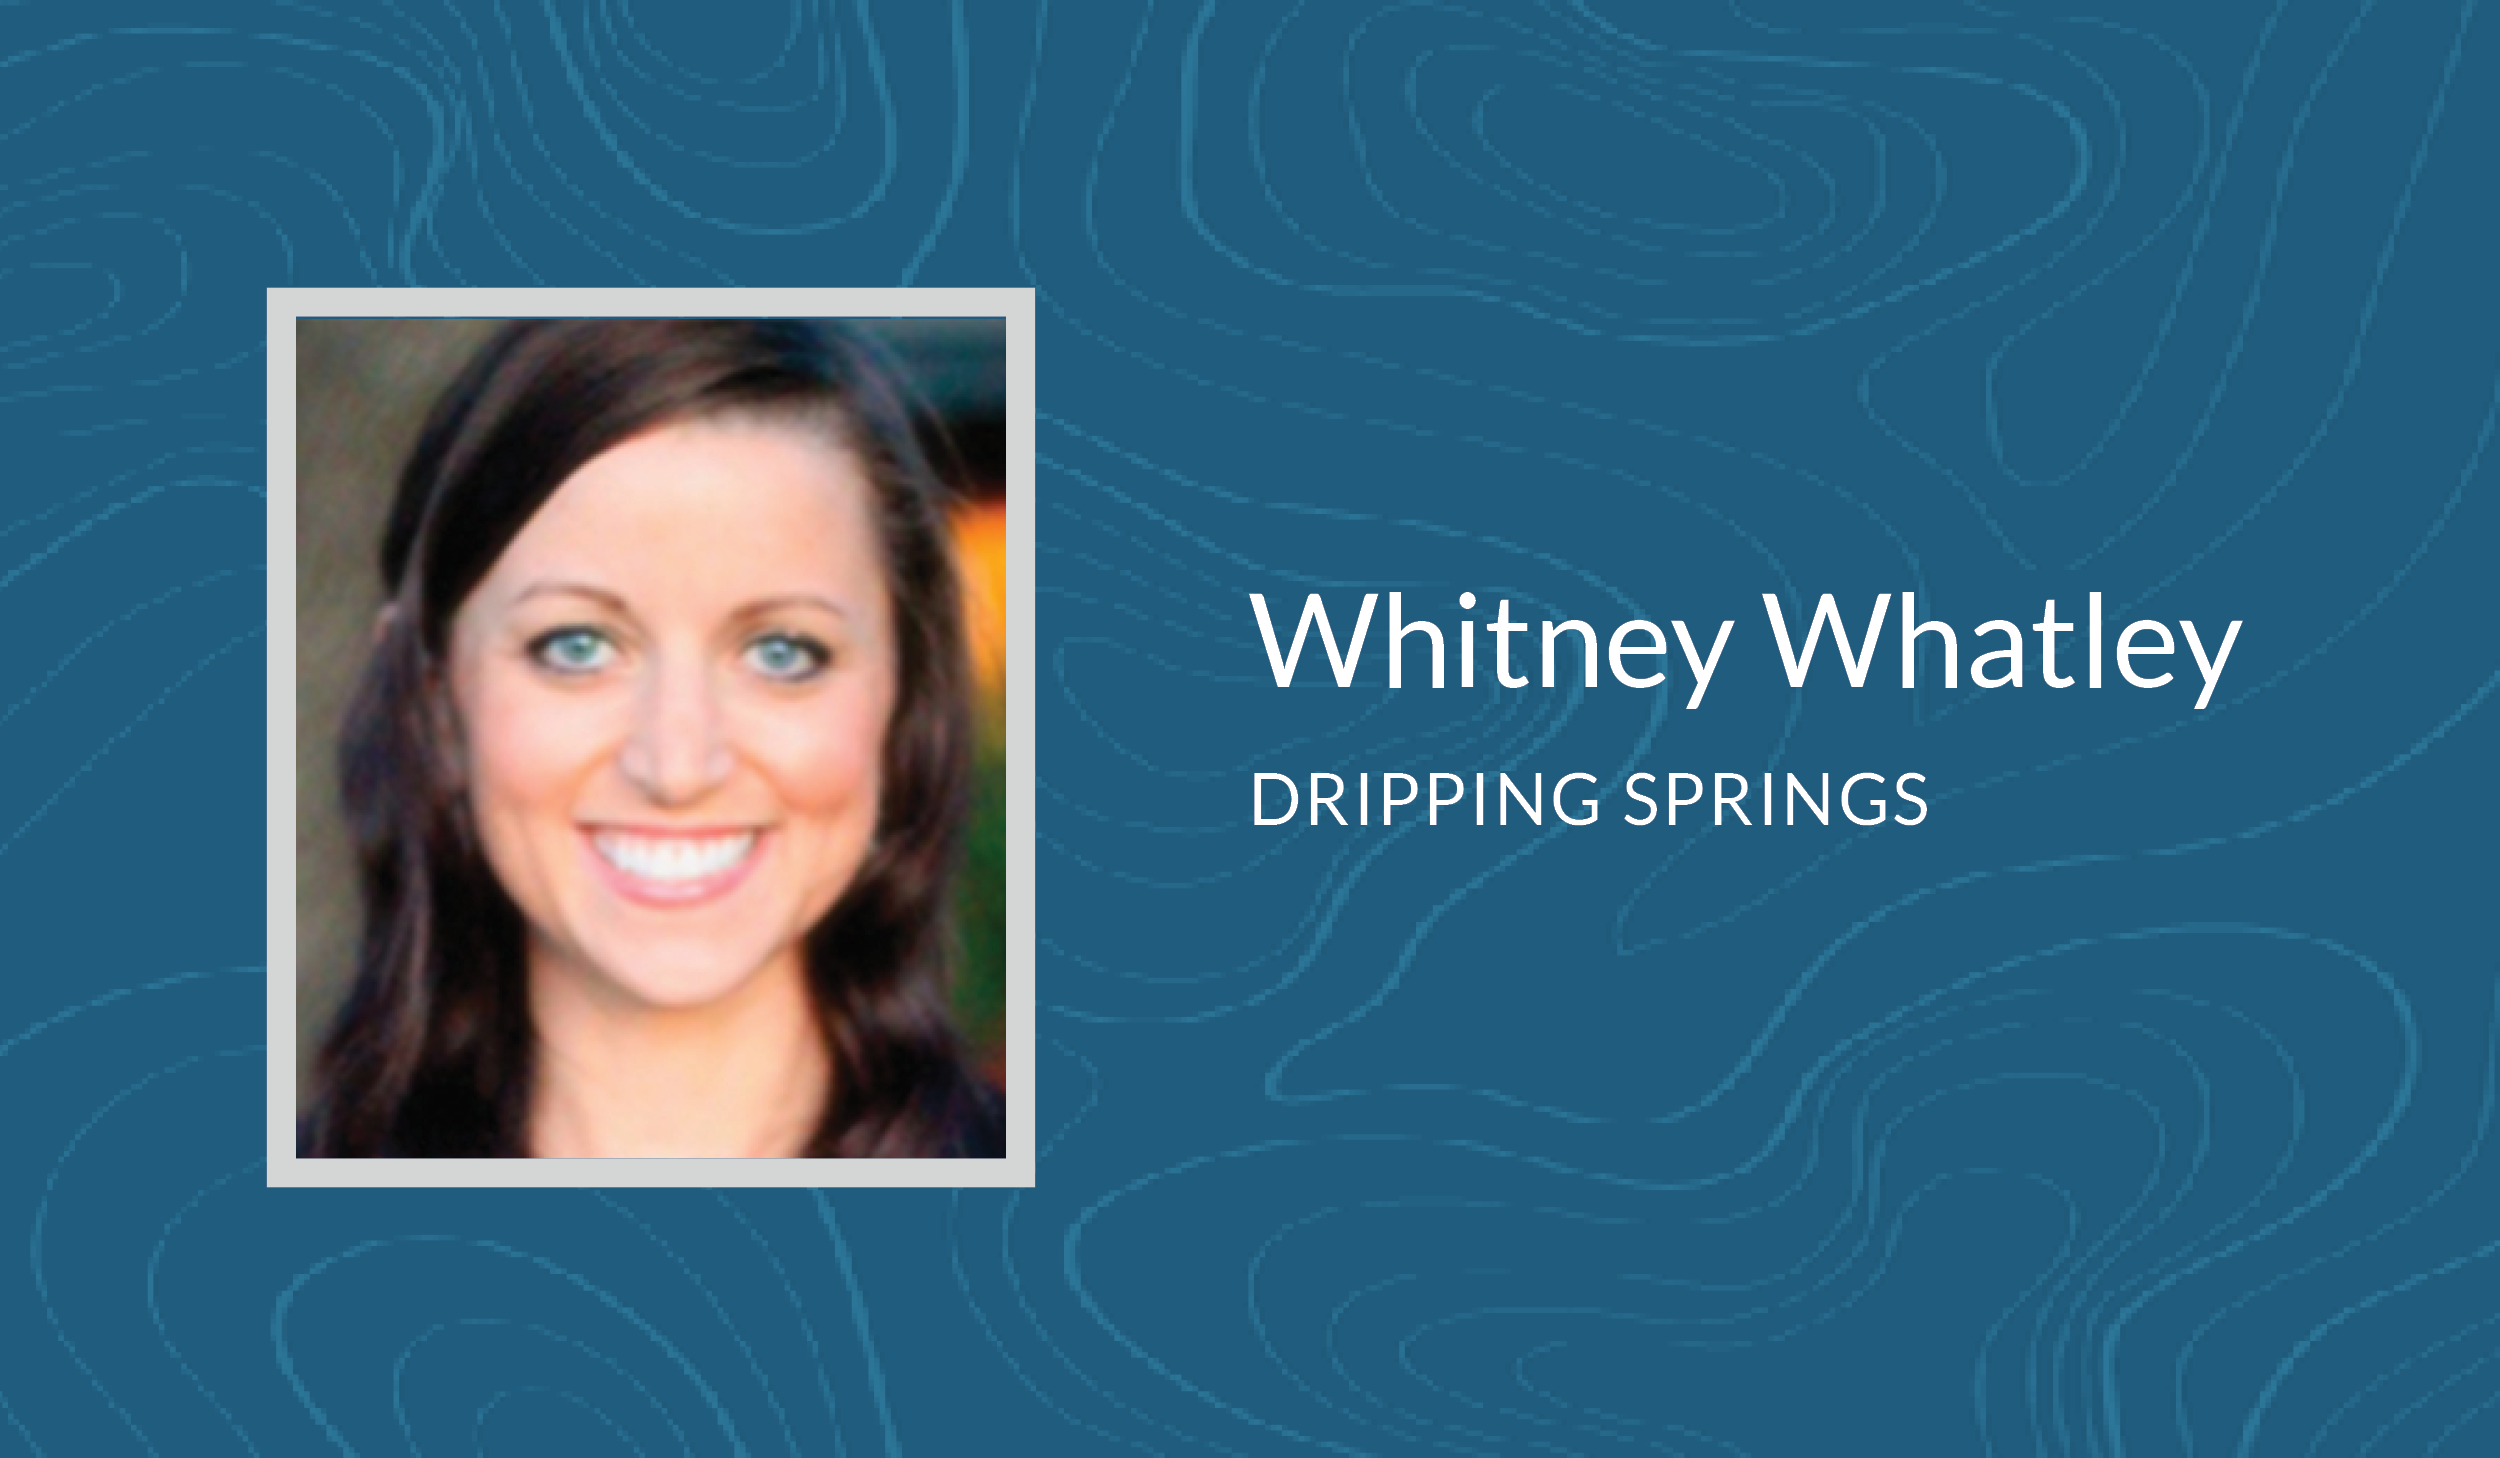 Whitney Whatley Landing Page Headers.png